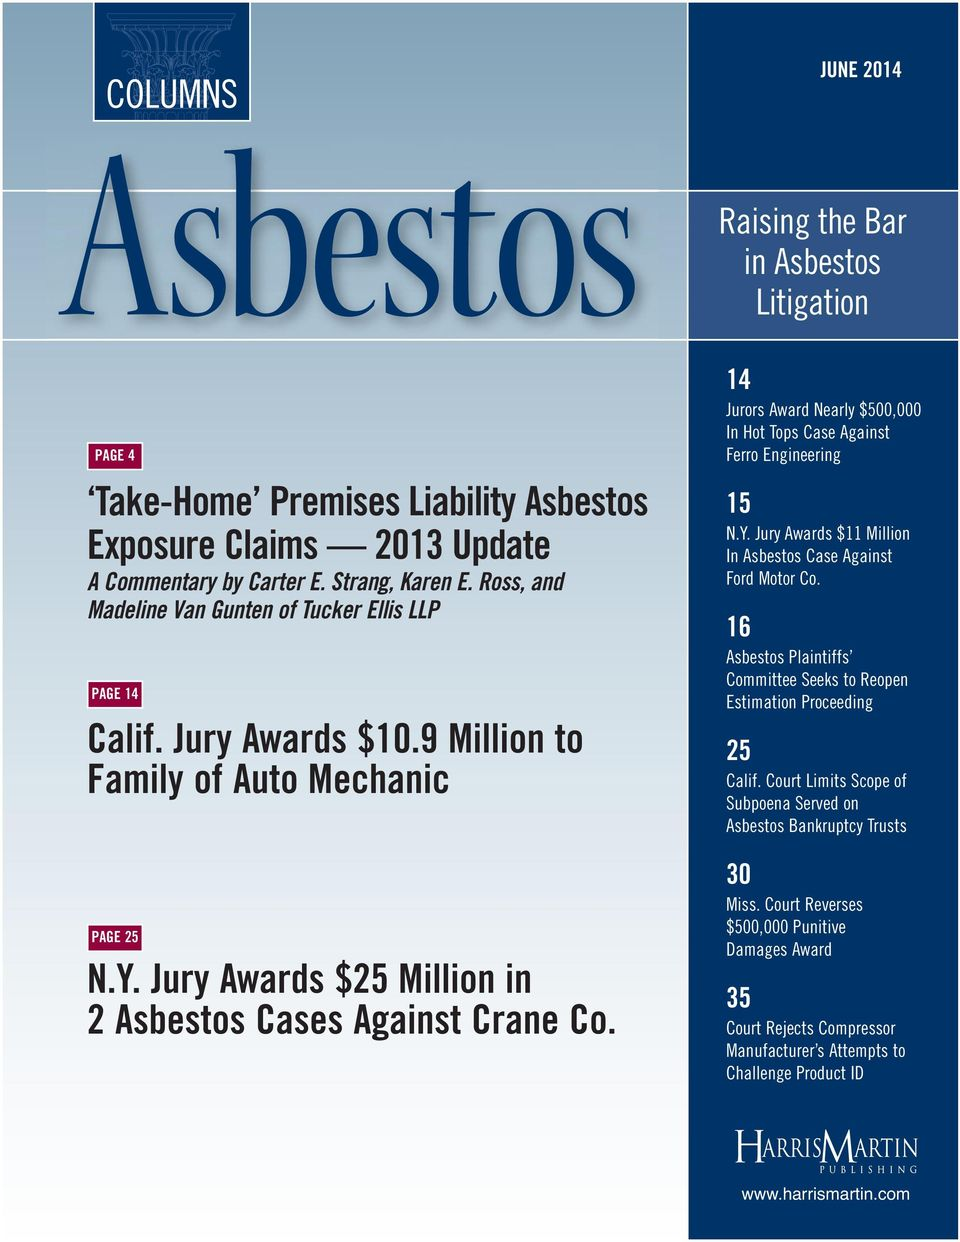 14 Jurors Award Nearly $500,000 In Hot Tops Case Against Ferro Engineering 15 N.Y. Jury Awards $11 Million In Asbestos Case Against Ford Motor Co.